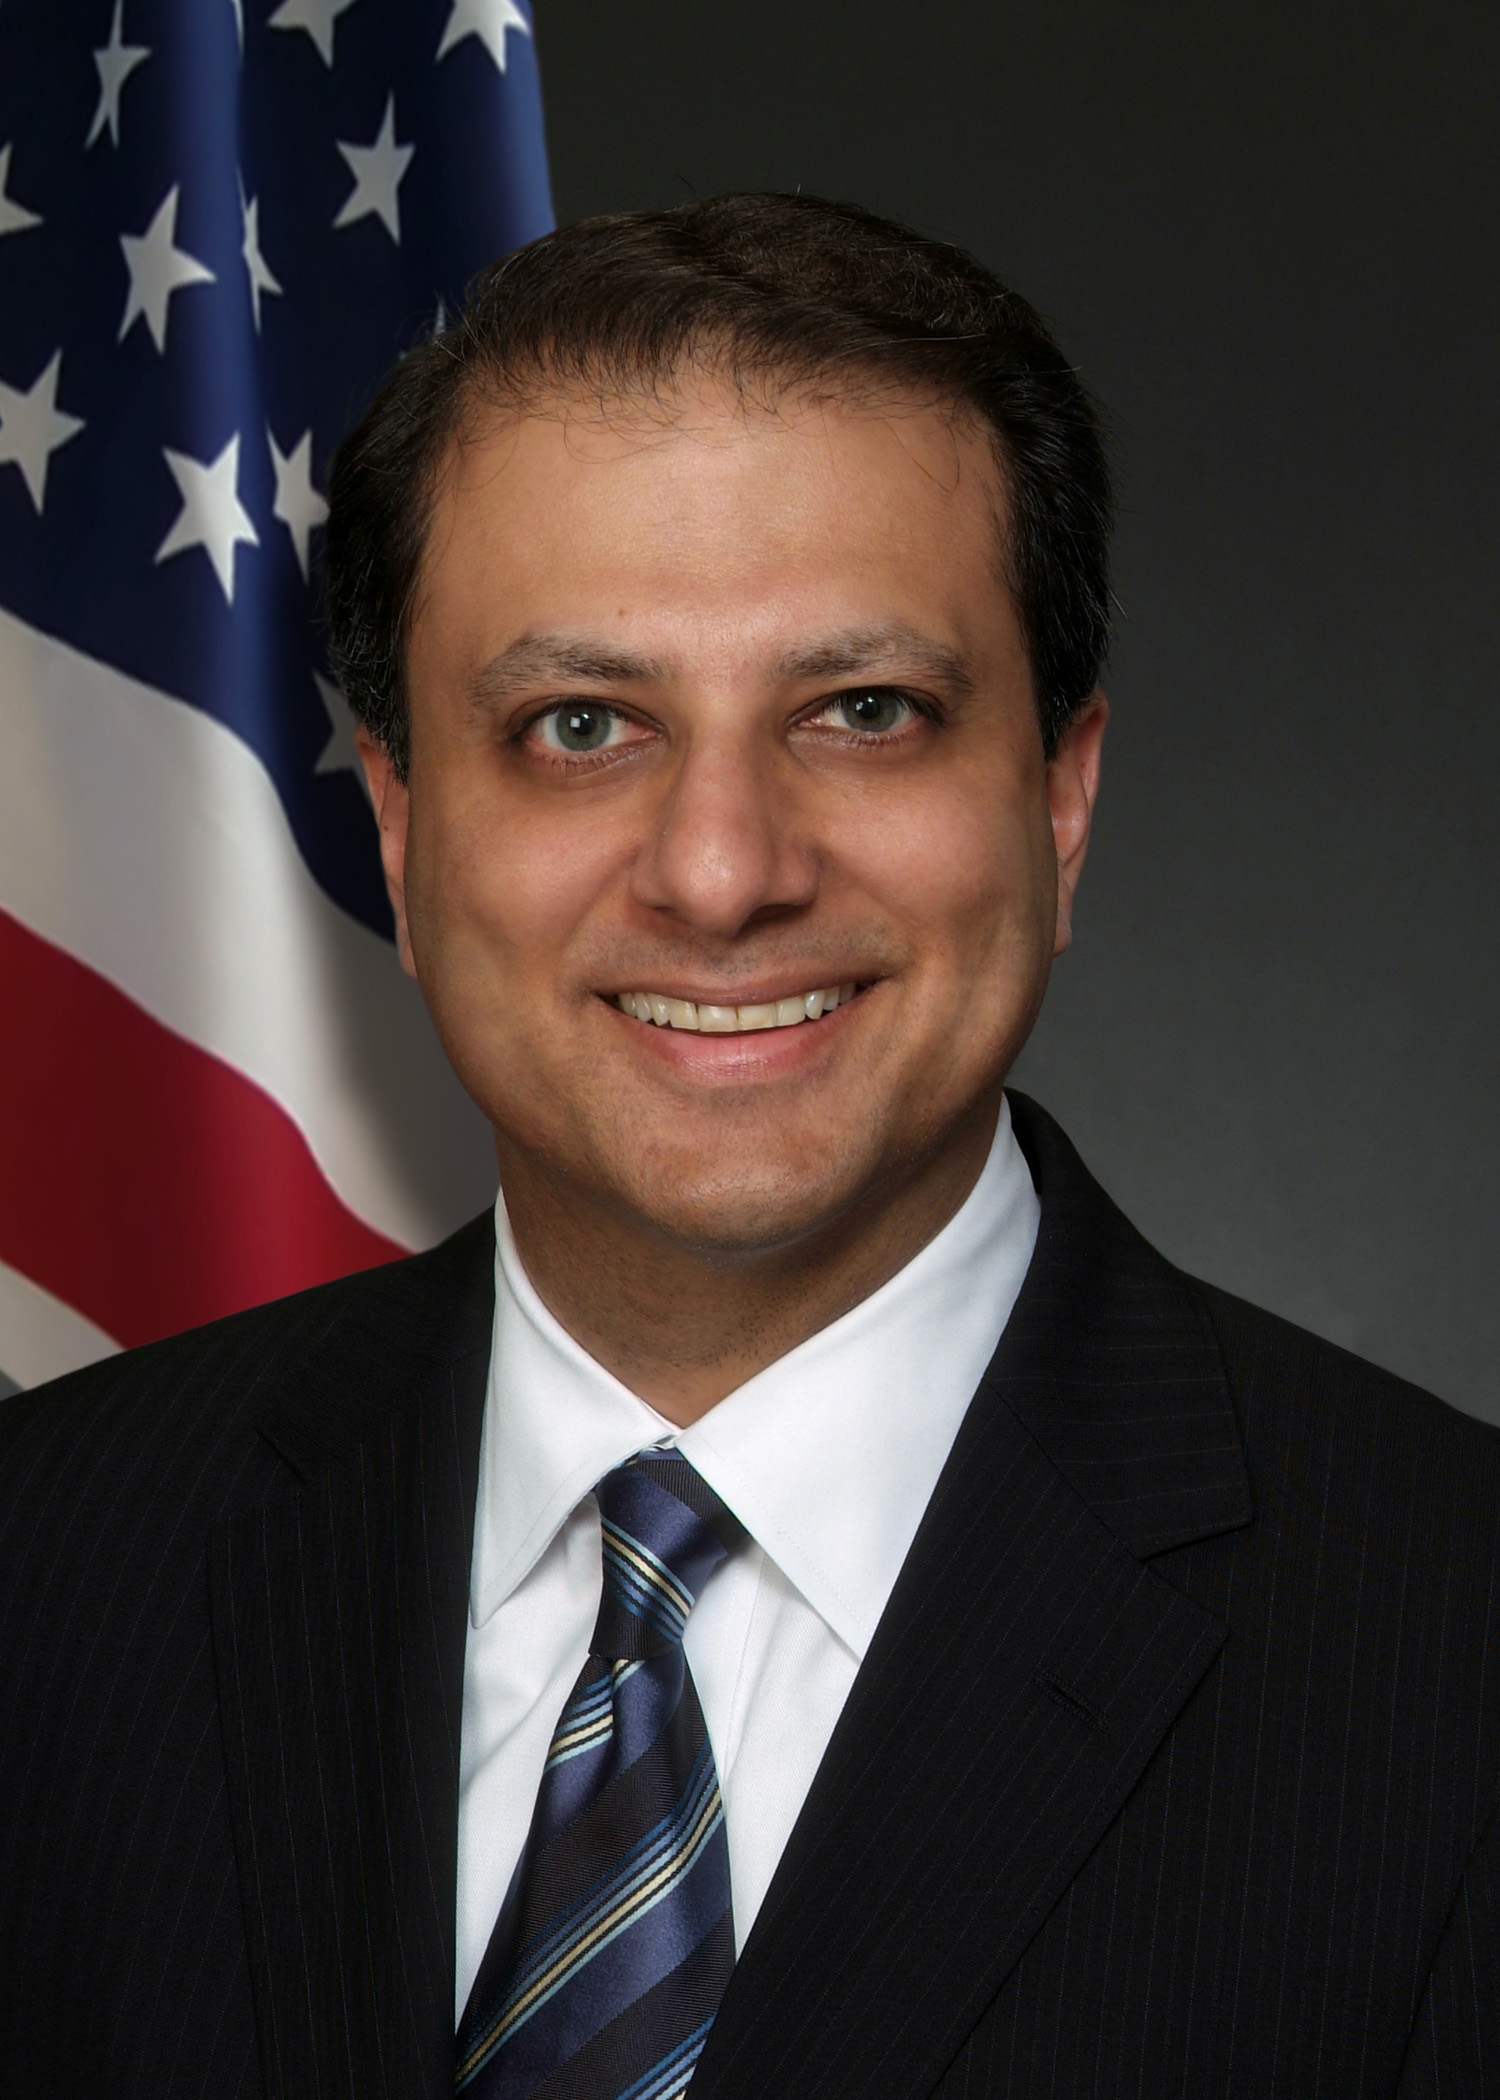 https://upload.wikimedia.org/wikipedia/commons/e/e3/Bharara%2C_Preet_Headshot.jpg